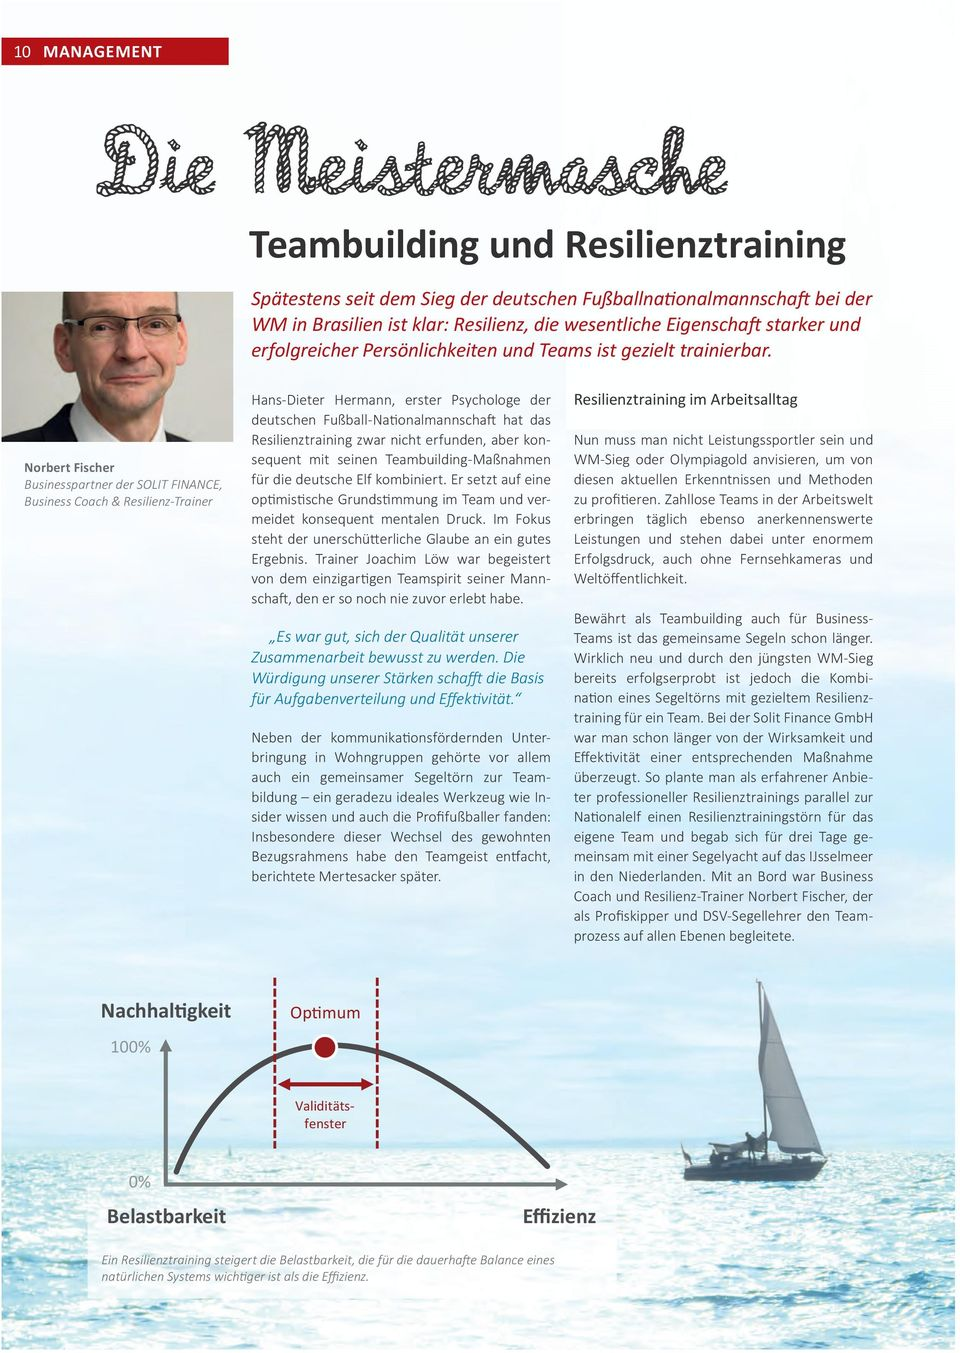 Norbert Fischer Businesspartner der SOLIT FINANCE, Business Coach & Resilienz-Trainer Hans-Dieter Hermann, erster Psychologe der deutschen Fußball-Nationalmannschaft hat das Resilienztraining zwar